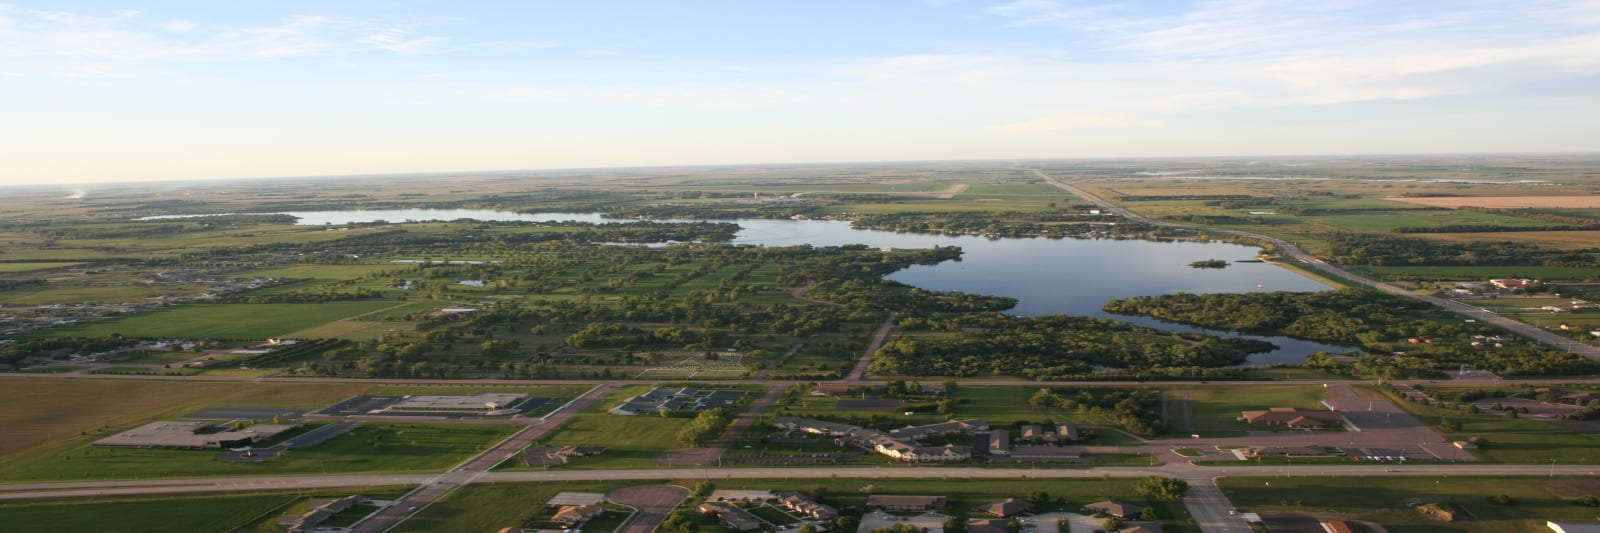 Mitchell-SD-Lake-Aerial-w1600.jpg